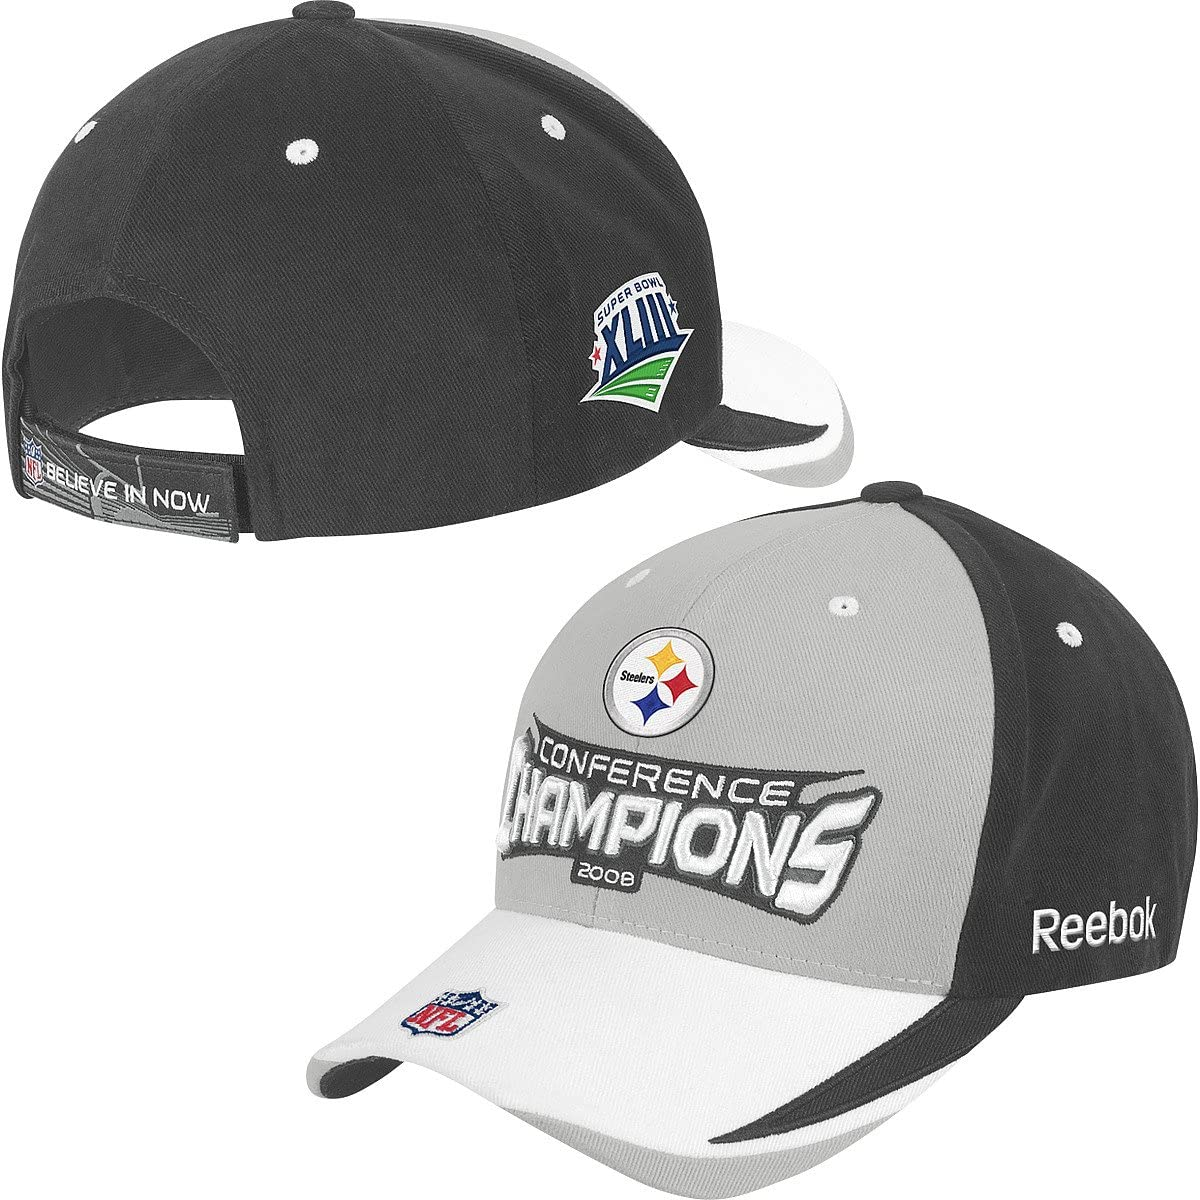 Pittsburgh Steelers 2008 AFC Champions